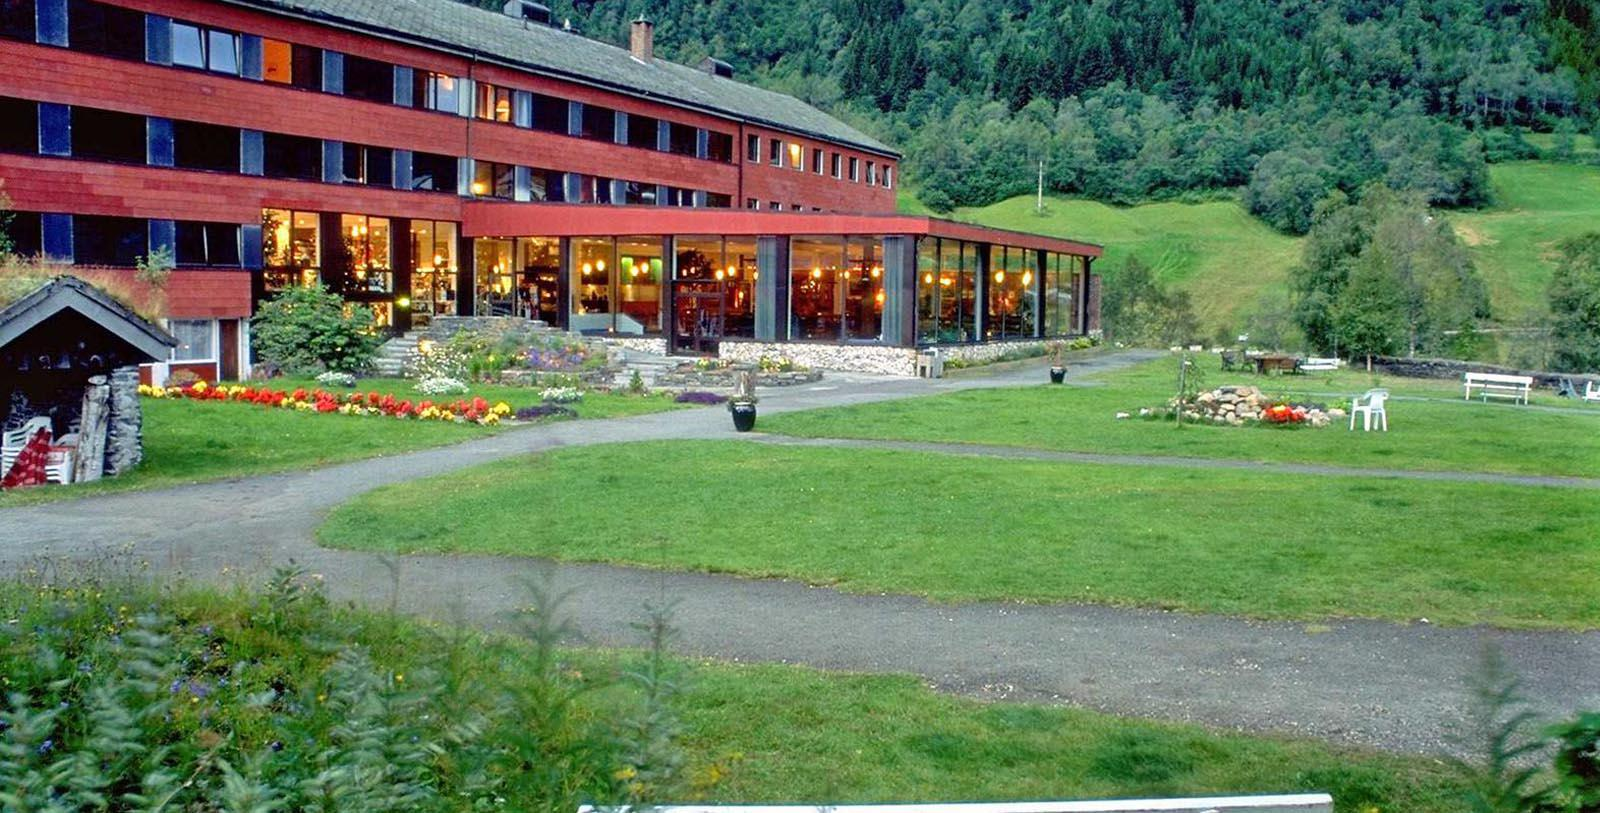 Image of Hotel Exterior Stalheim Hotel, 1750, Member of Historic Hotels Worldwide, in Stalheim, Norway, Experience